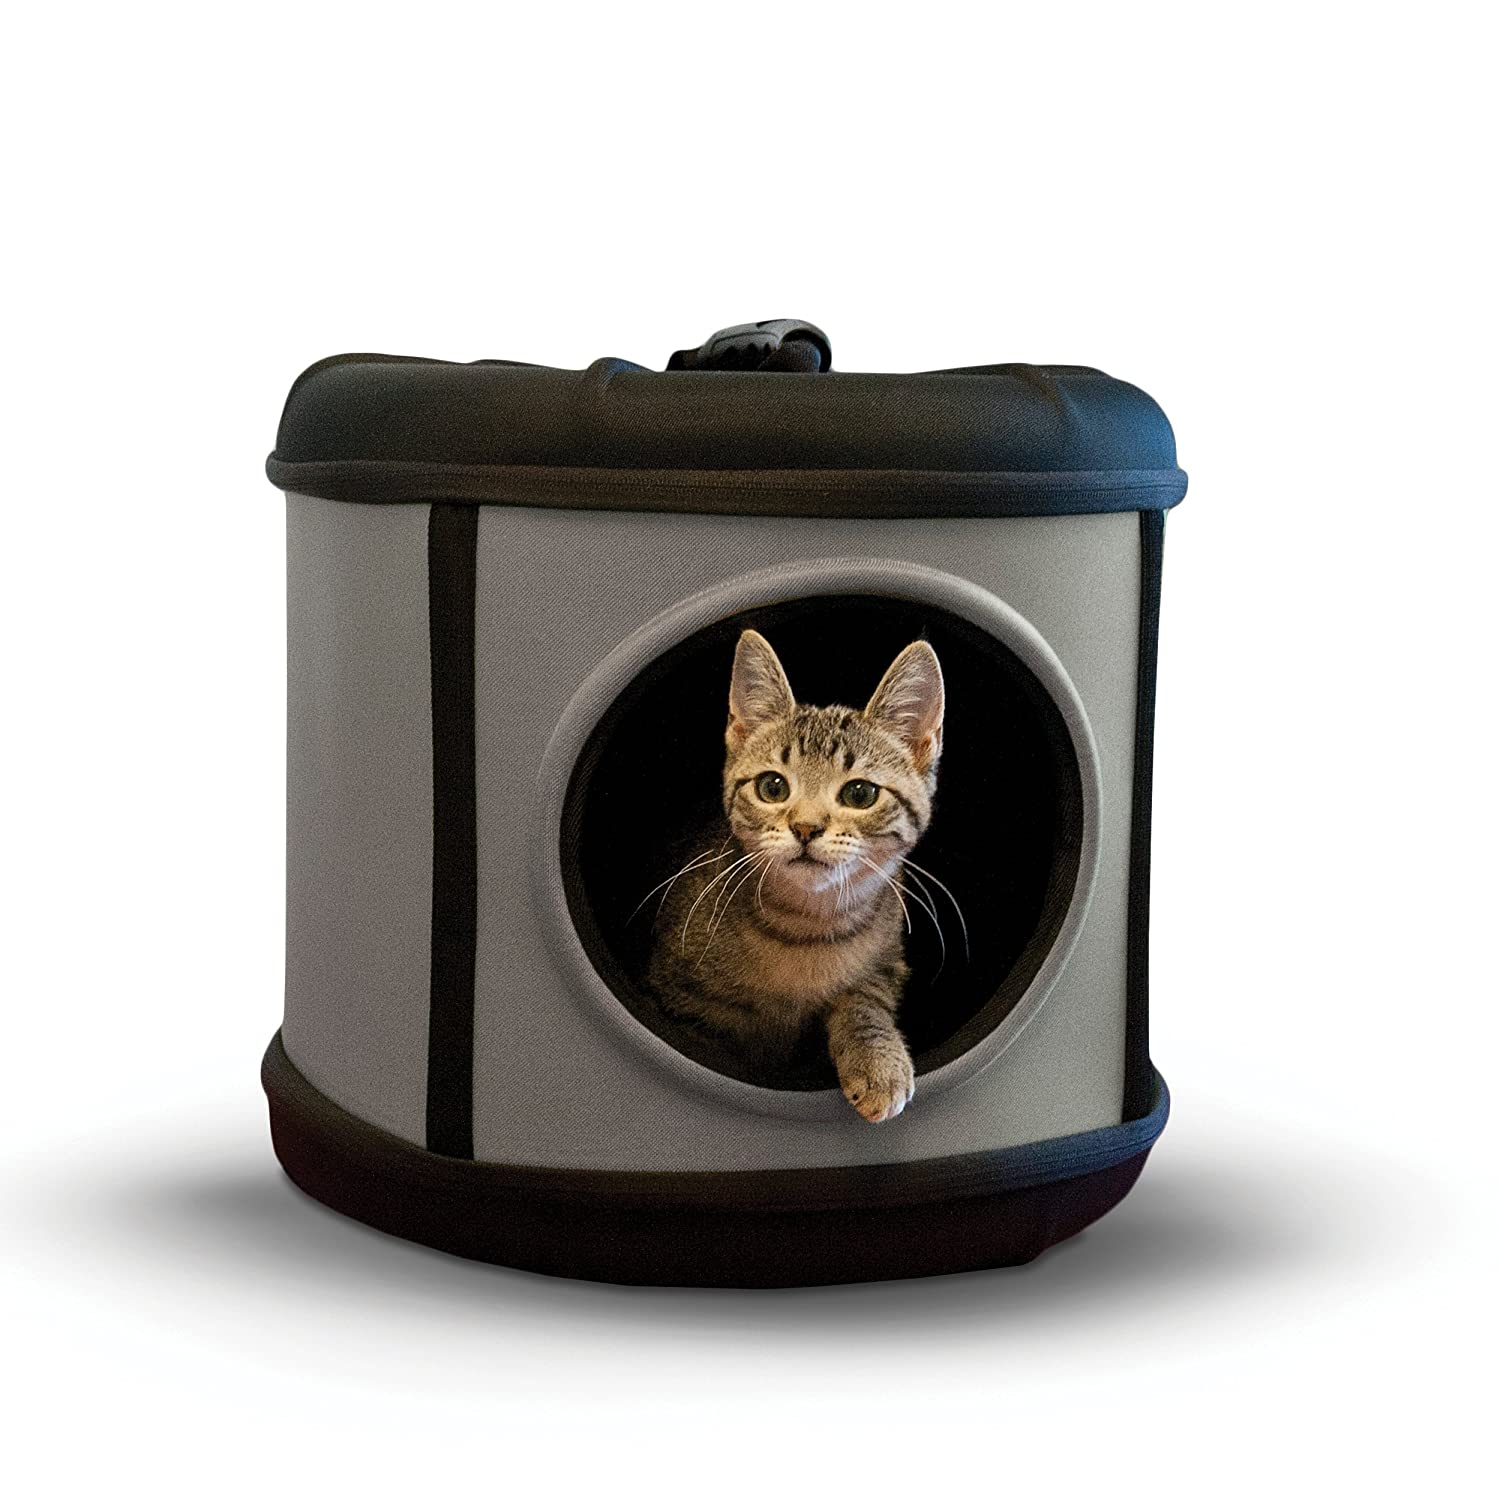 K&H Manufacturing Mod Capsule for Pets